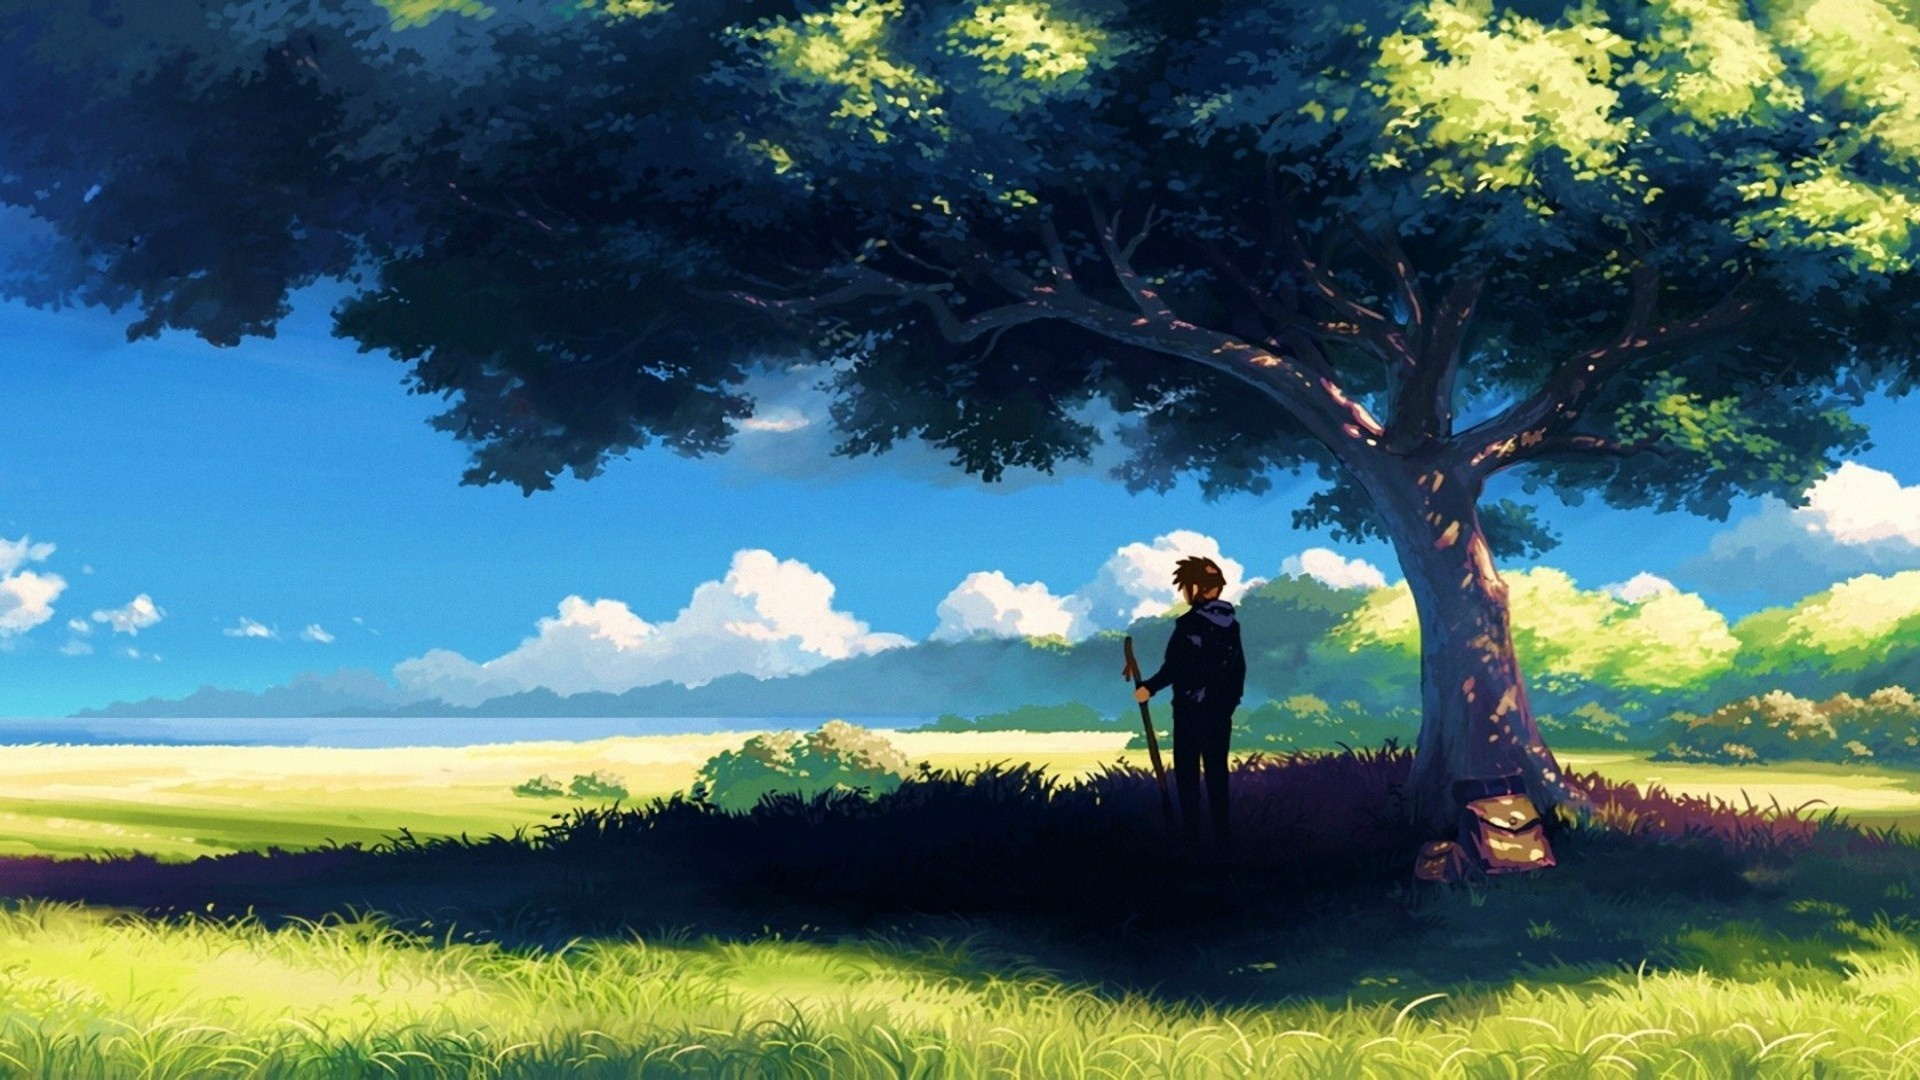 Anime Landscape With Clouds background picture